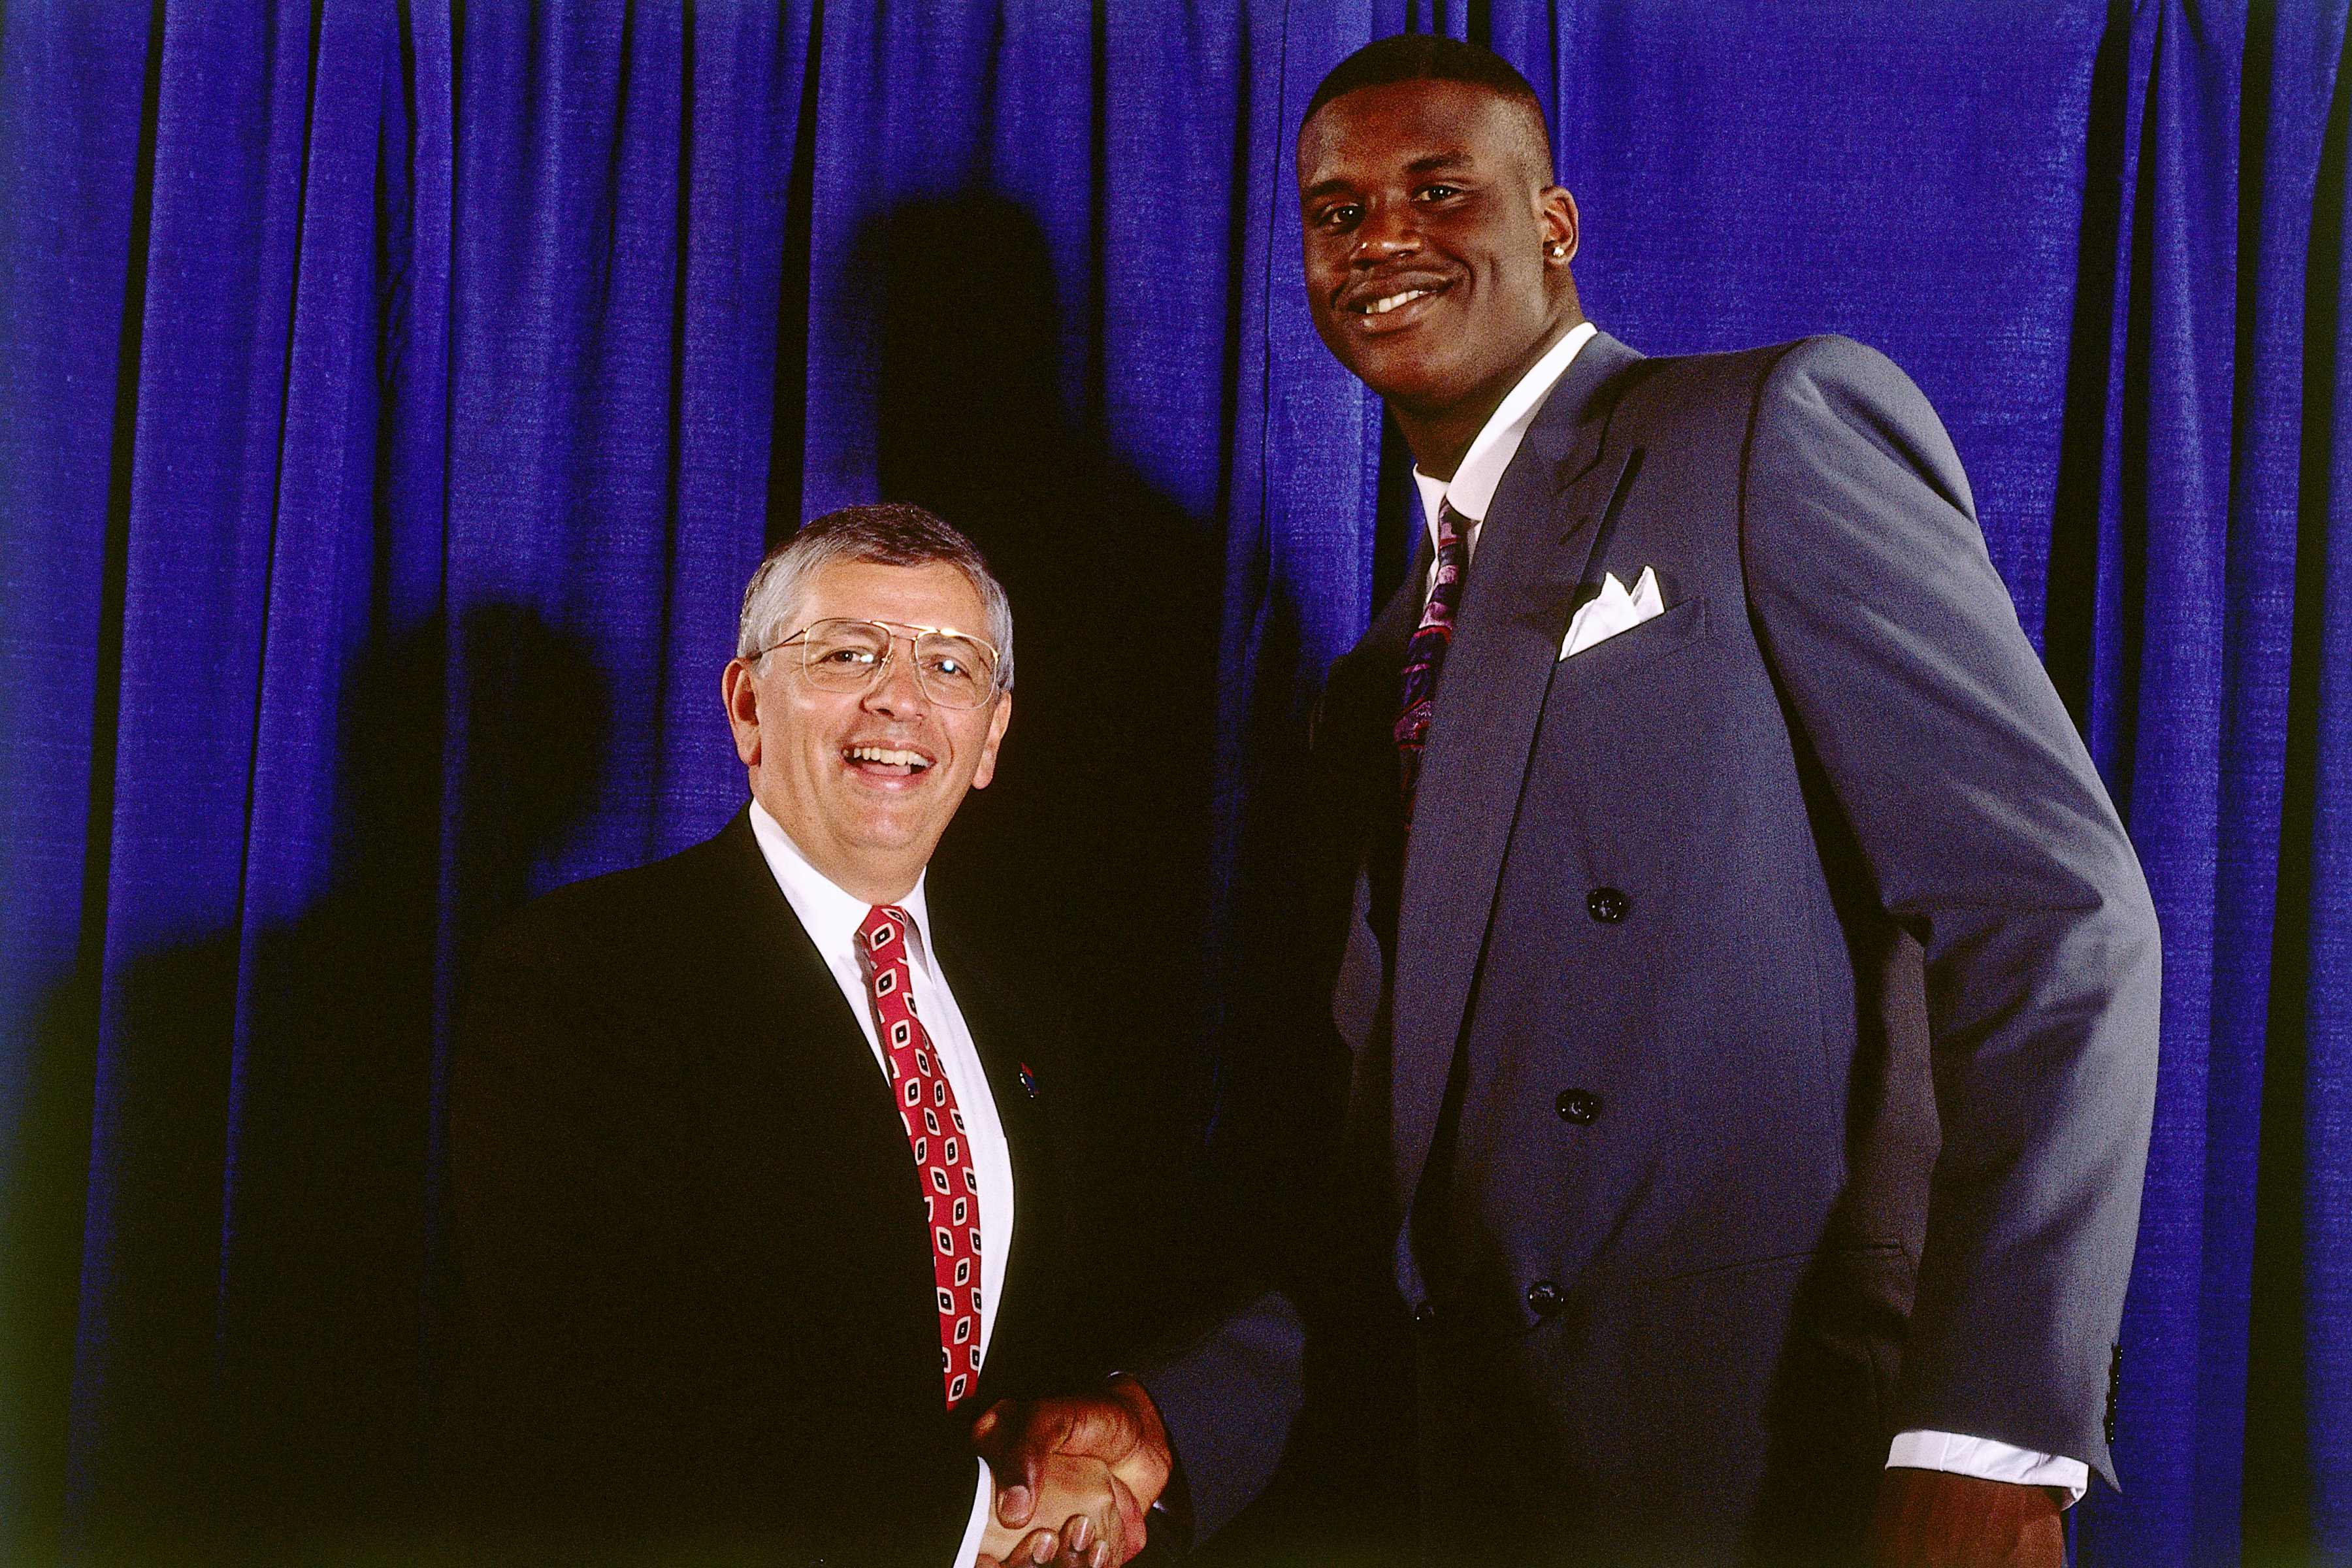 Shaquille O'Neal and David Stern Portrait